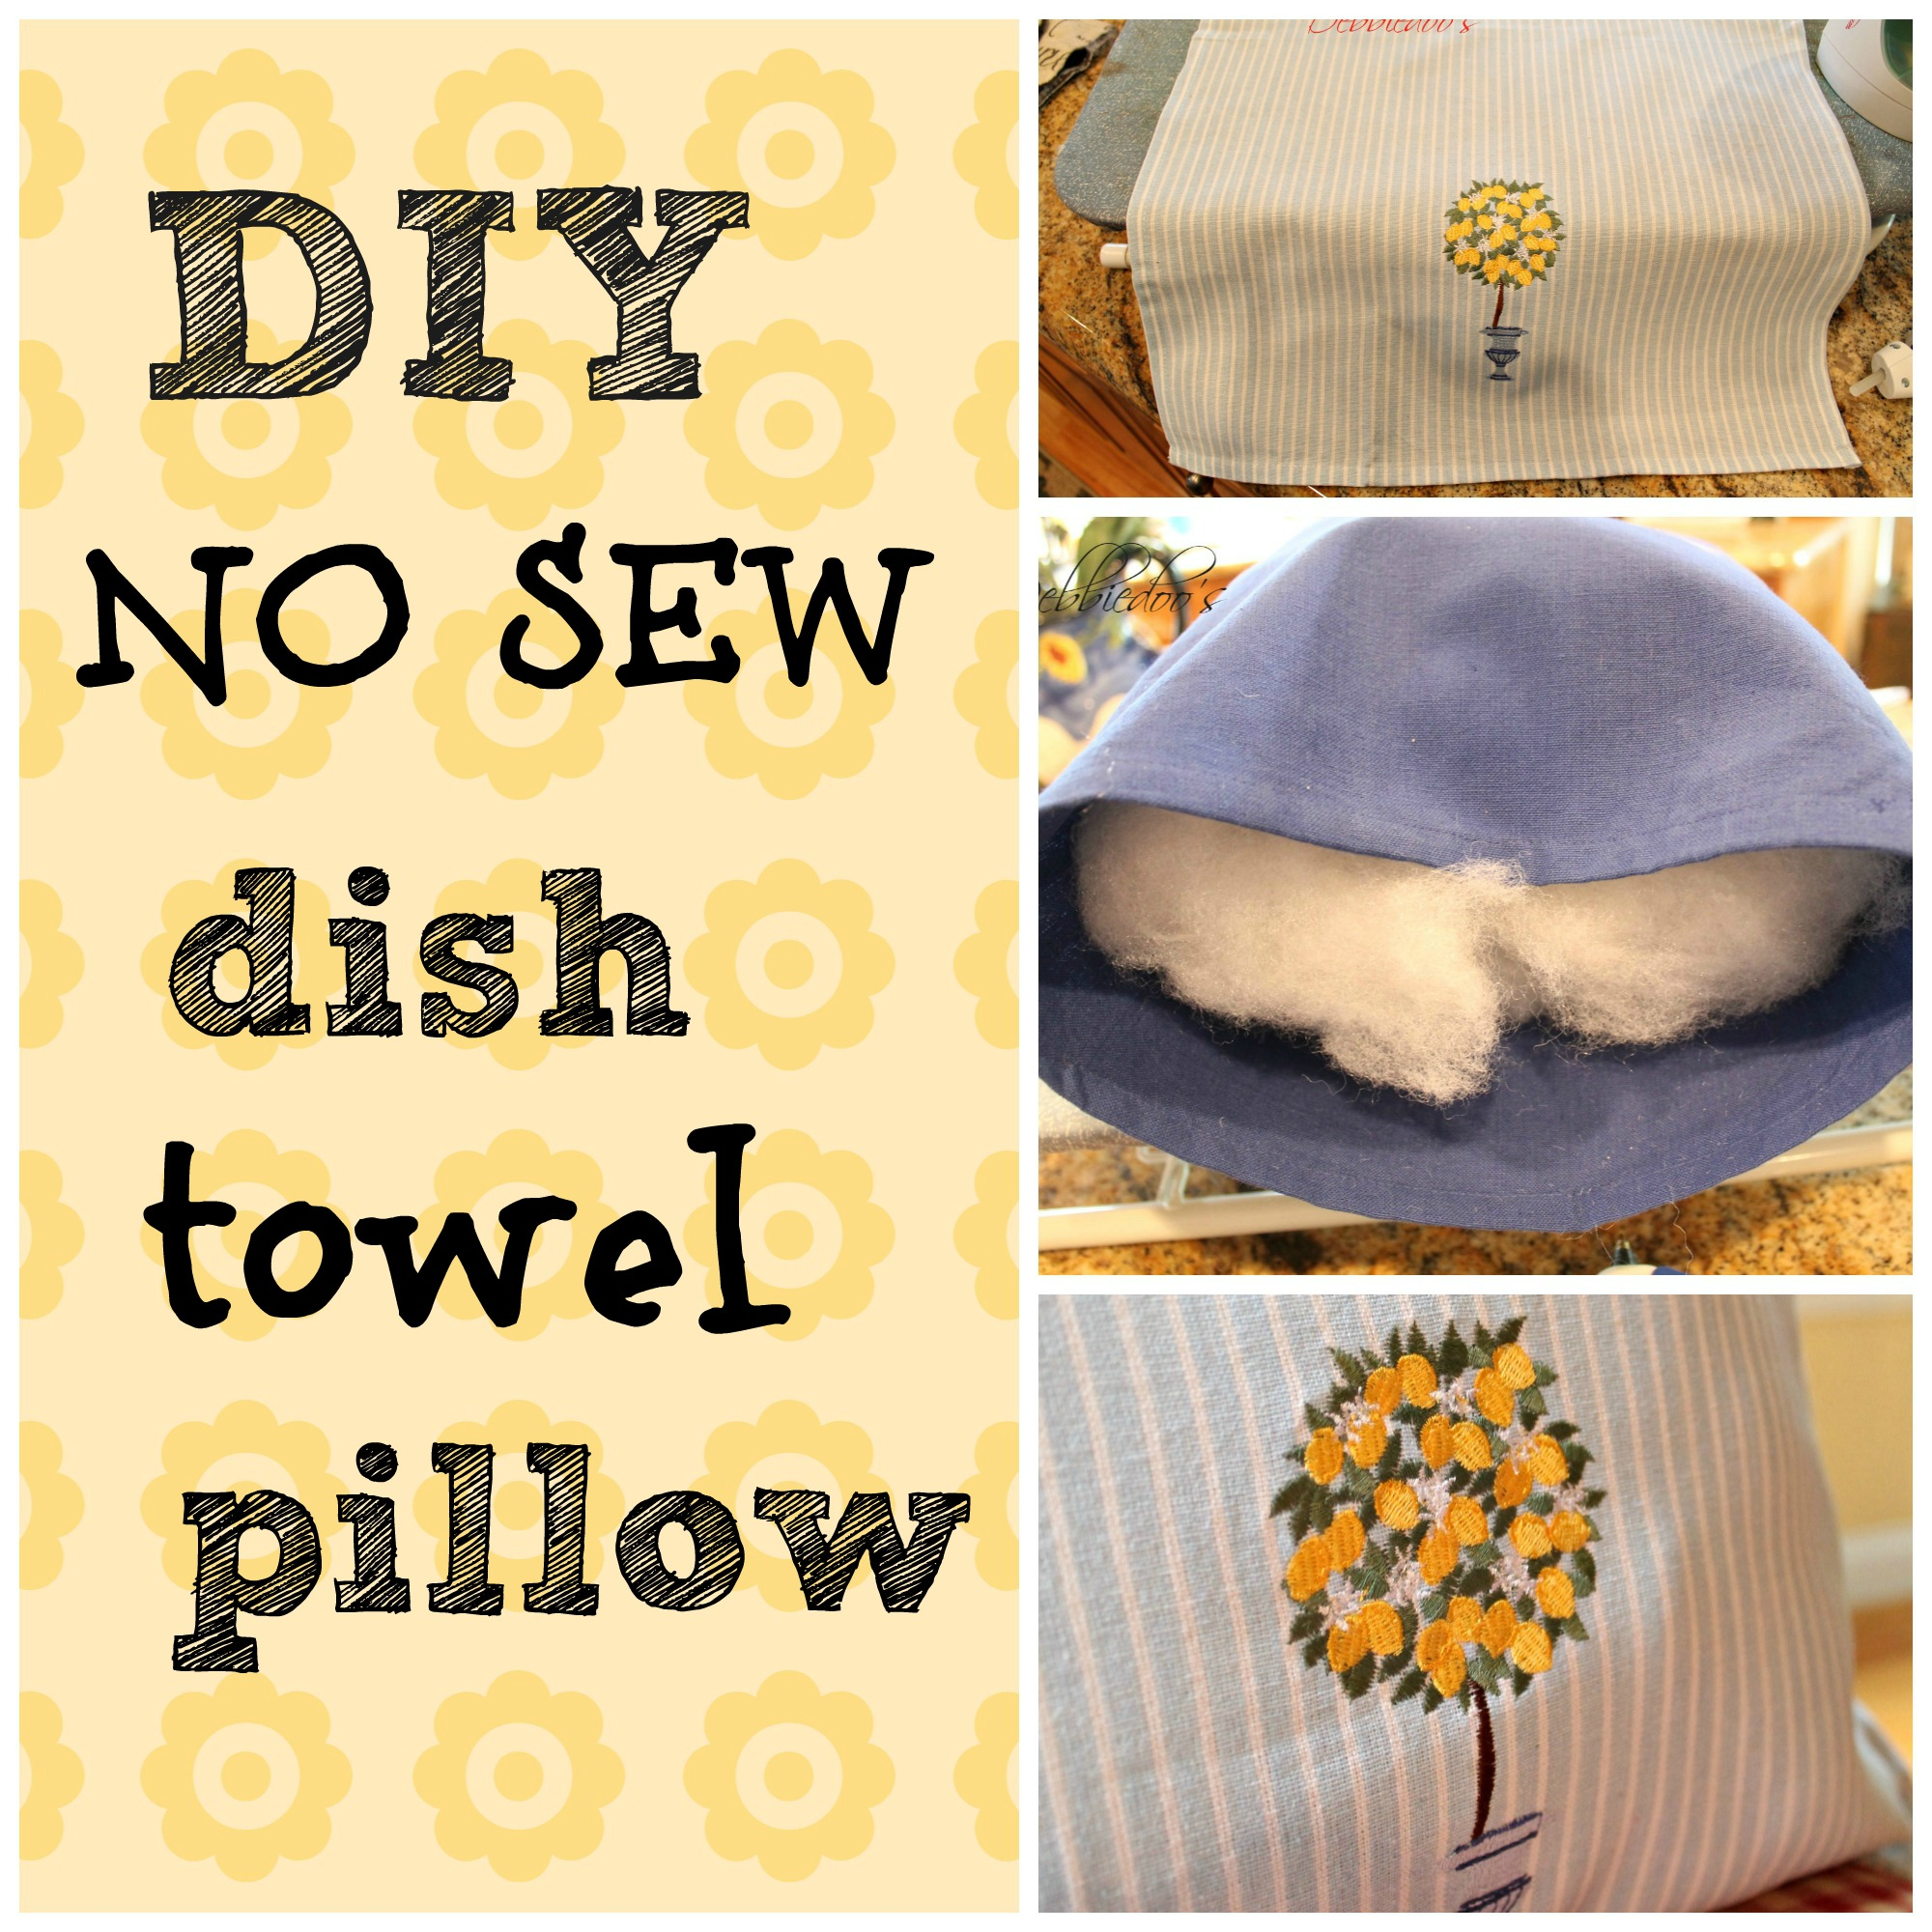 How to make a dish towel pillow for $2 00 - Debbiedoos